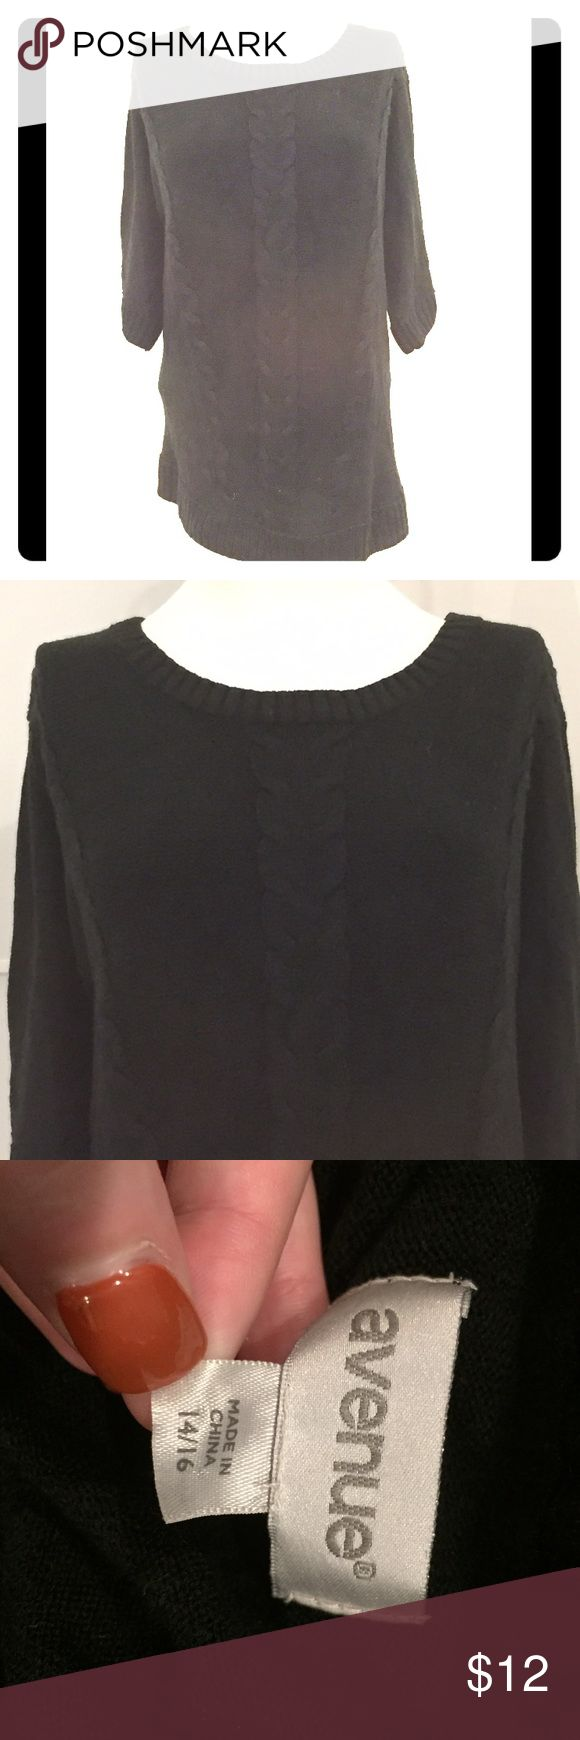 PLUS Black SS Cable Sweater from Avenue! 14/16 Perfect for fall/winter! Love that it has short sleeves! You can layer it with a long sleeve tee if you want. Wear to work or casually on the weekends! Avenue Sweaters Crew & Scoop Necks